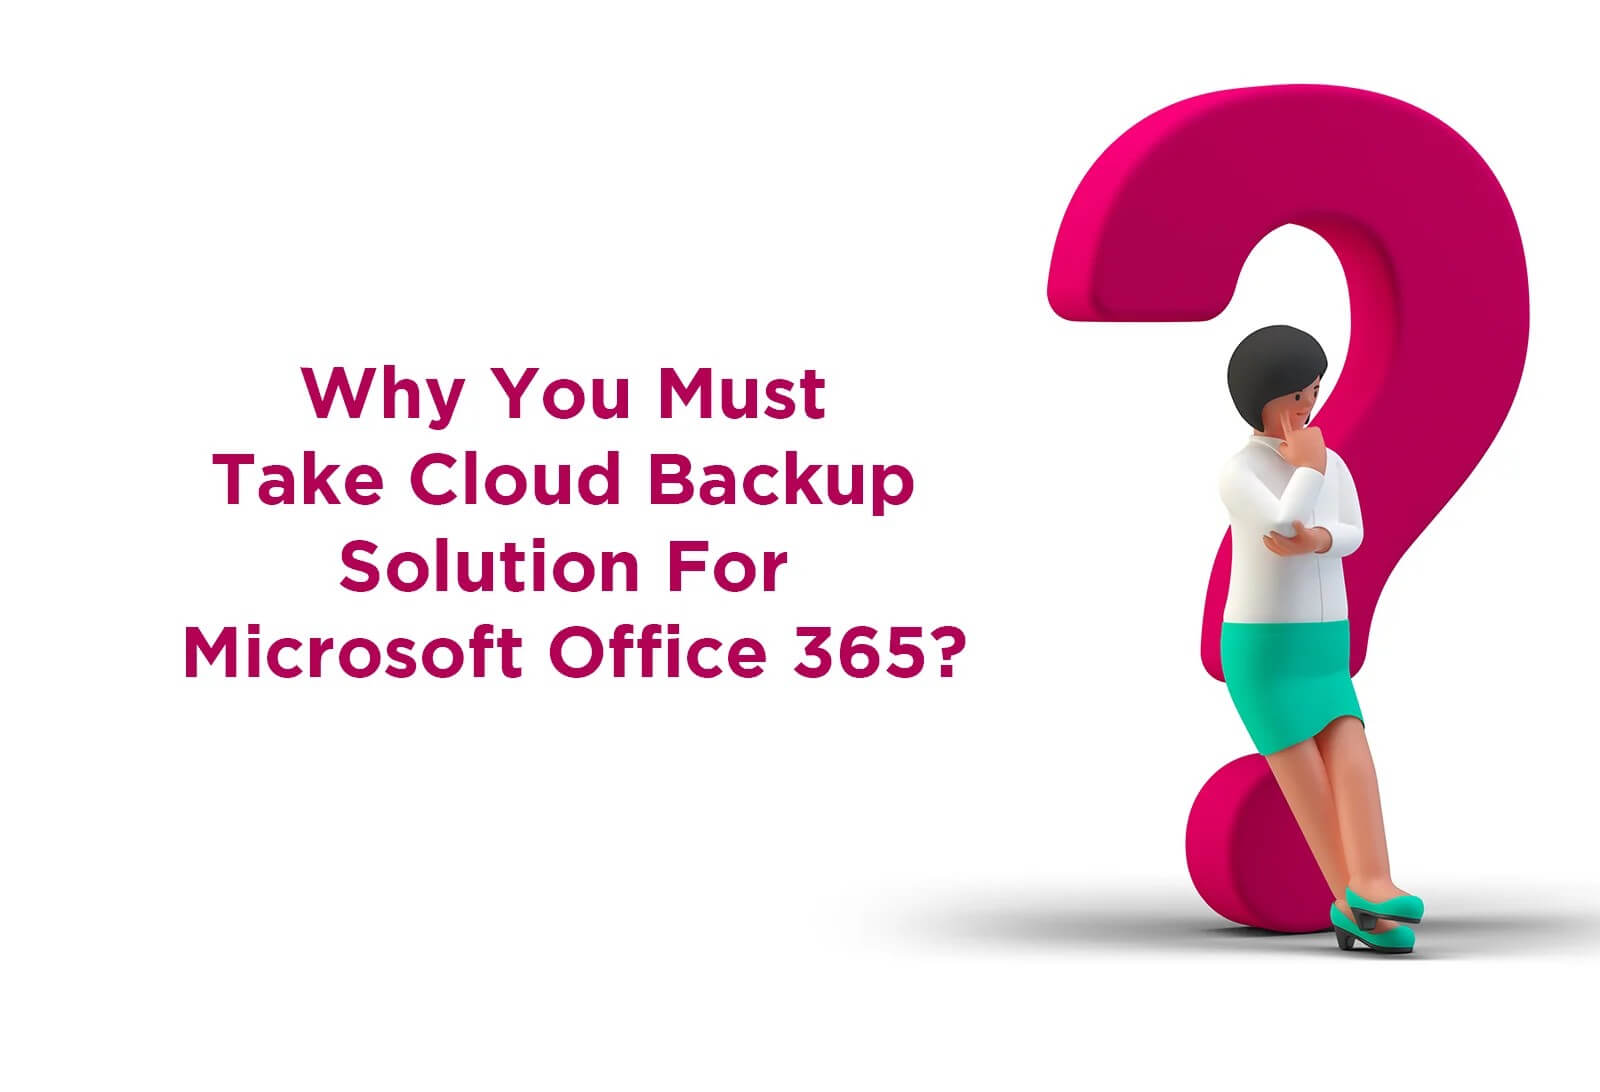 Why You Must Take Cloud Backup Solution For Microsoft Office 365?